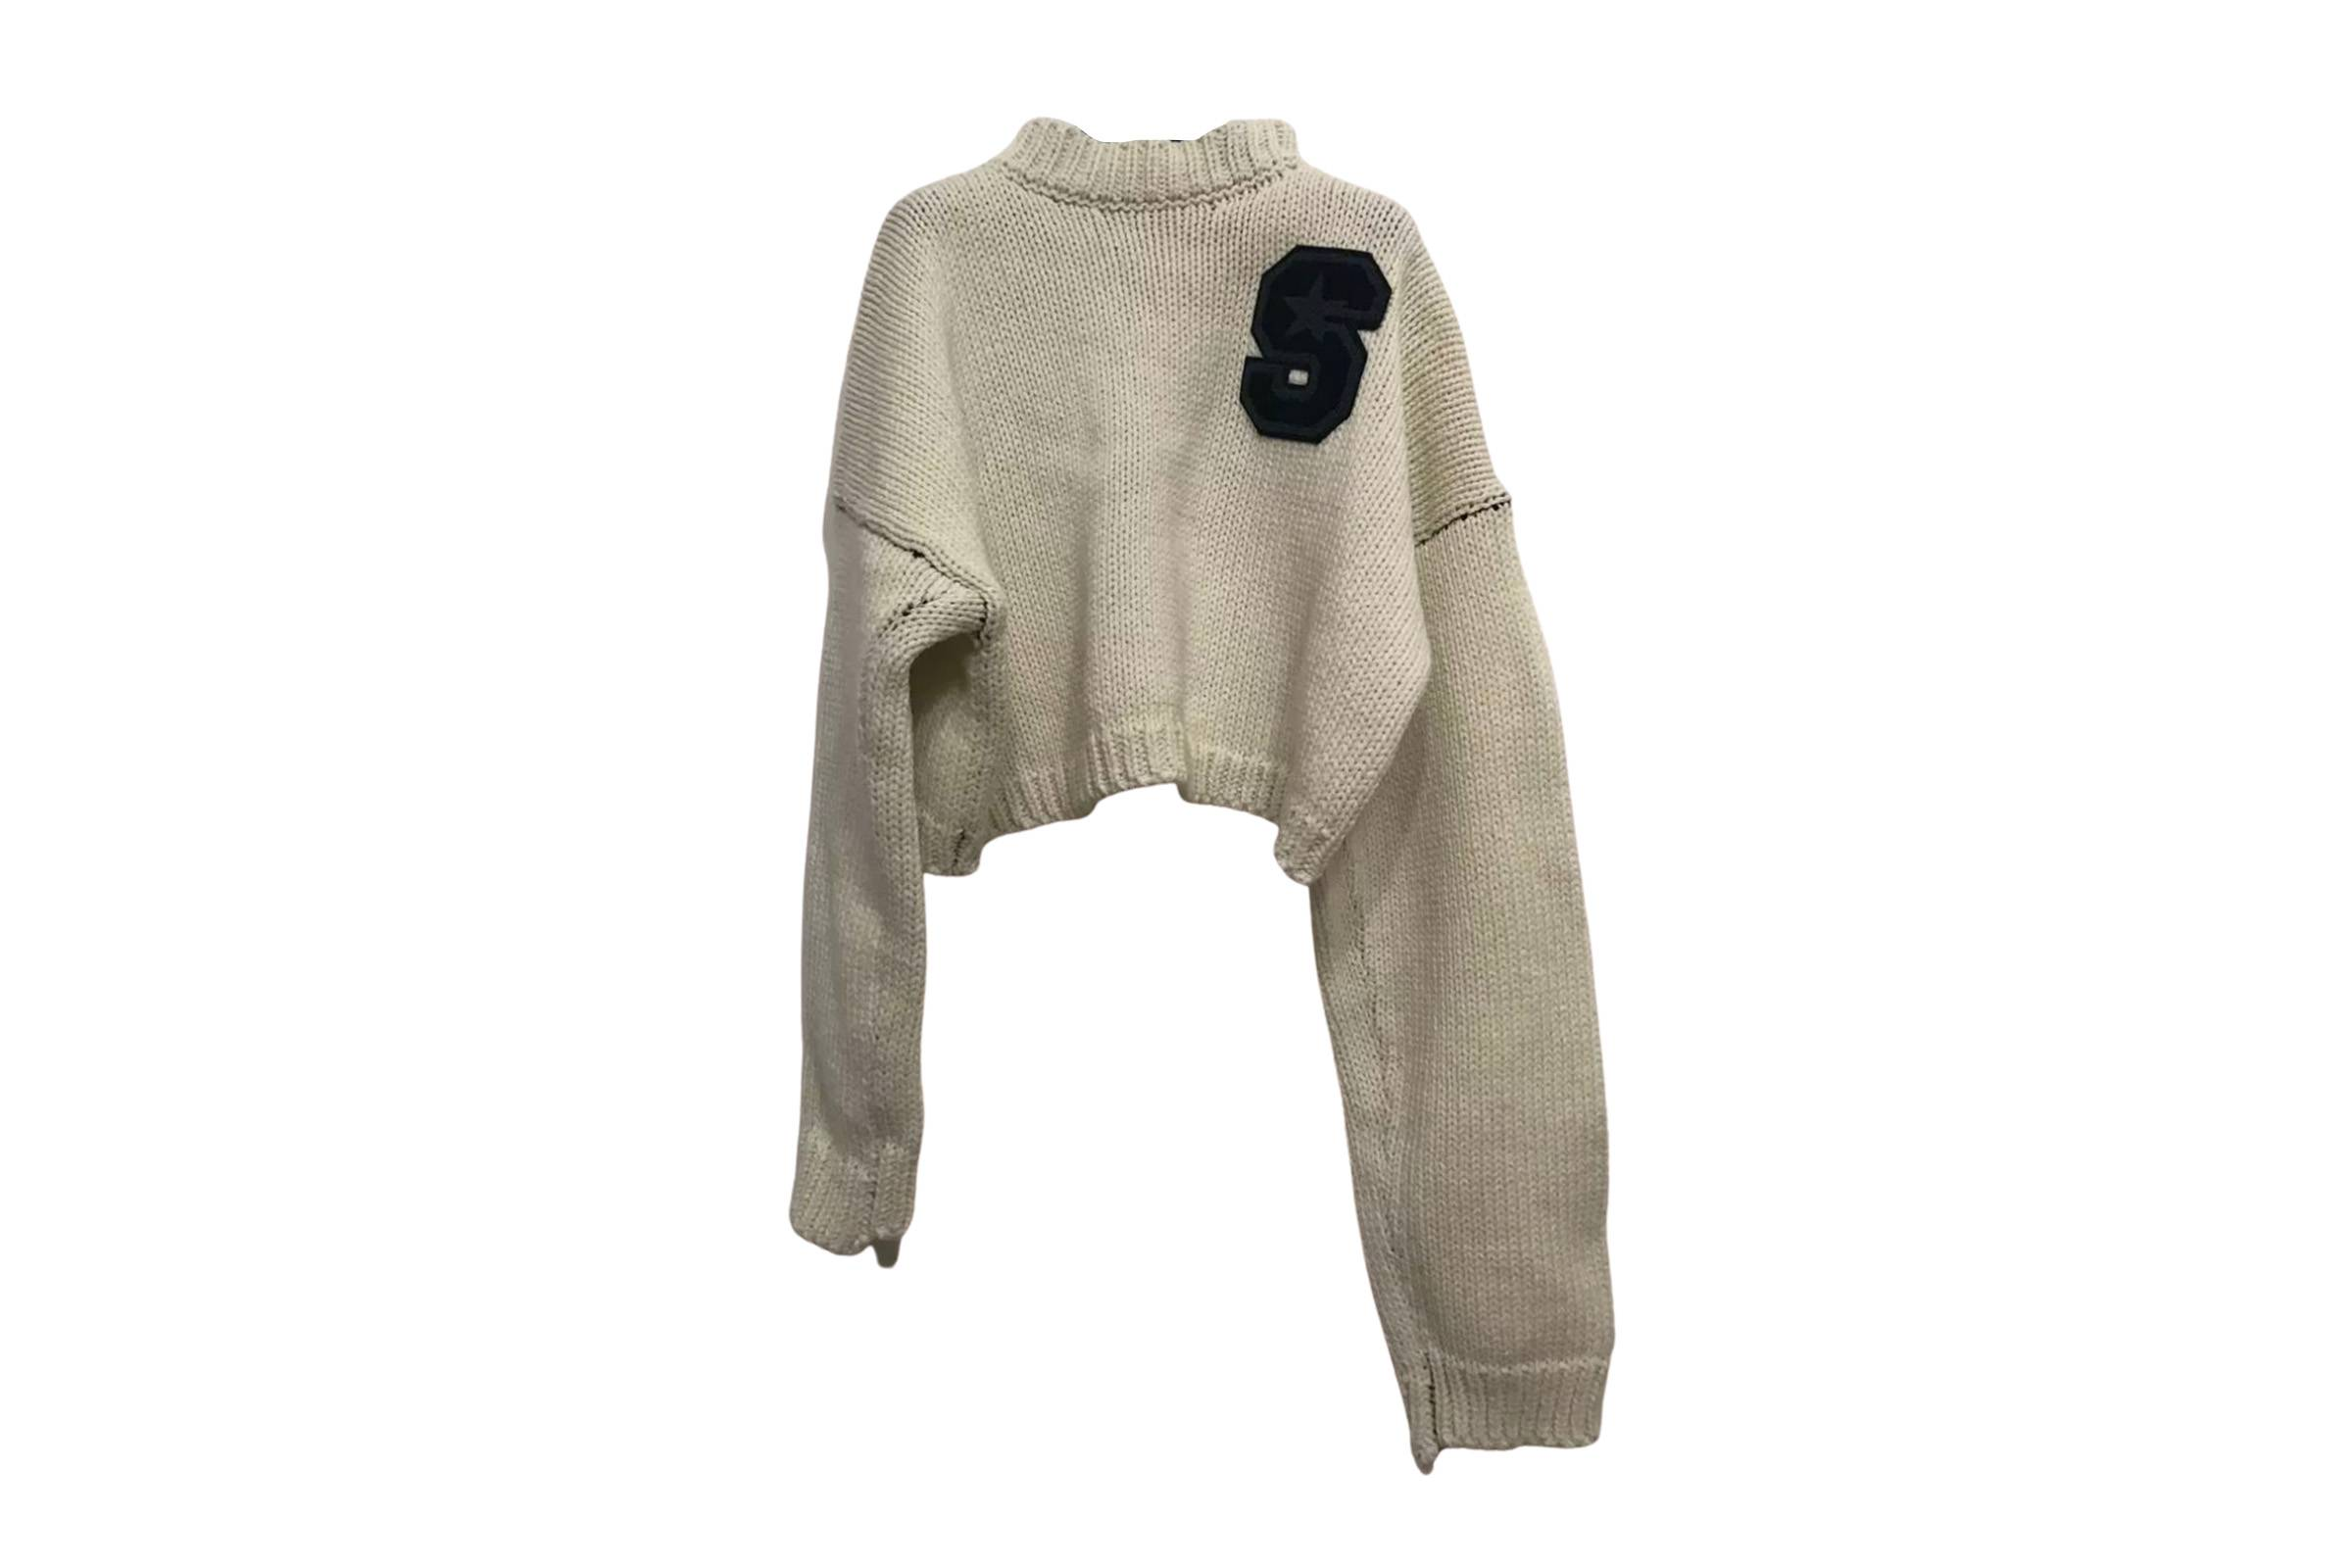 Raf Simons Cropped Sweater